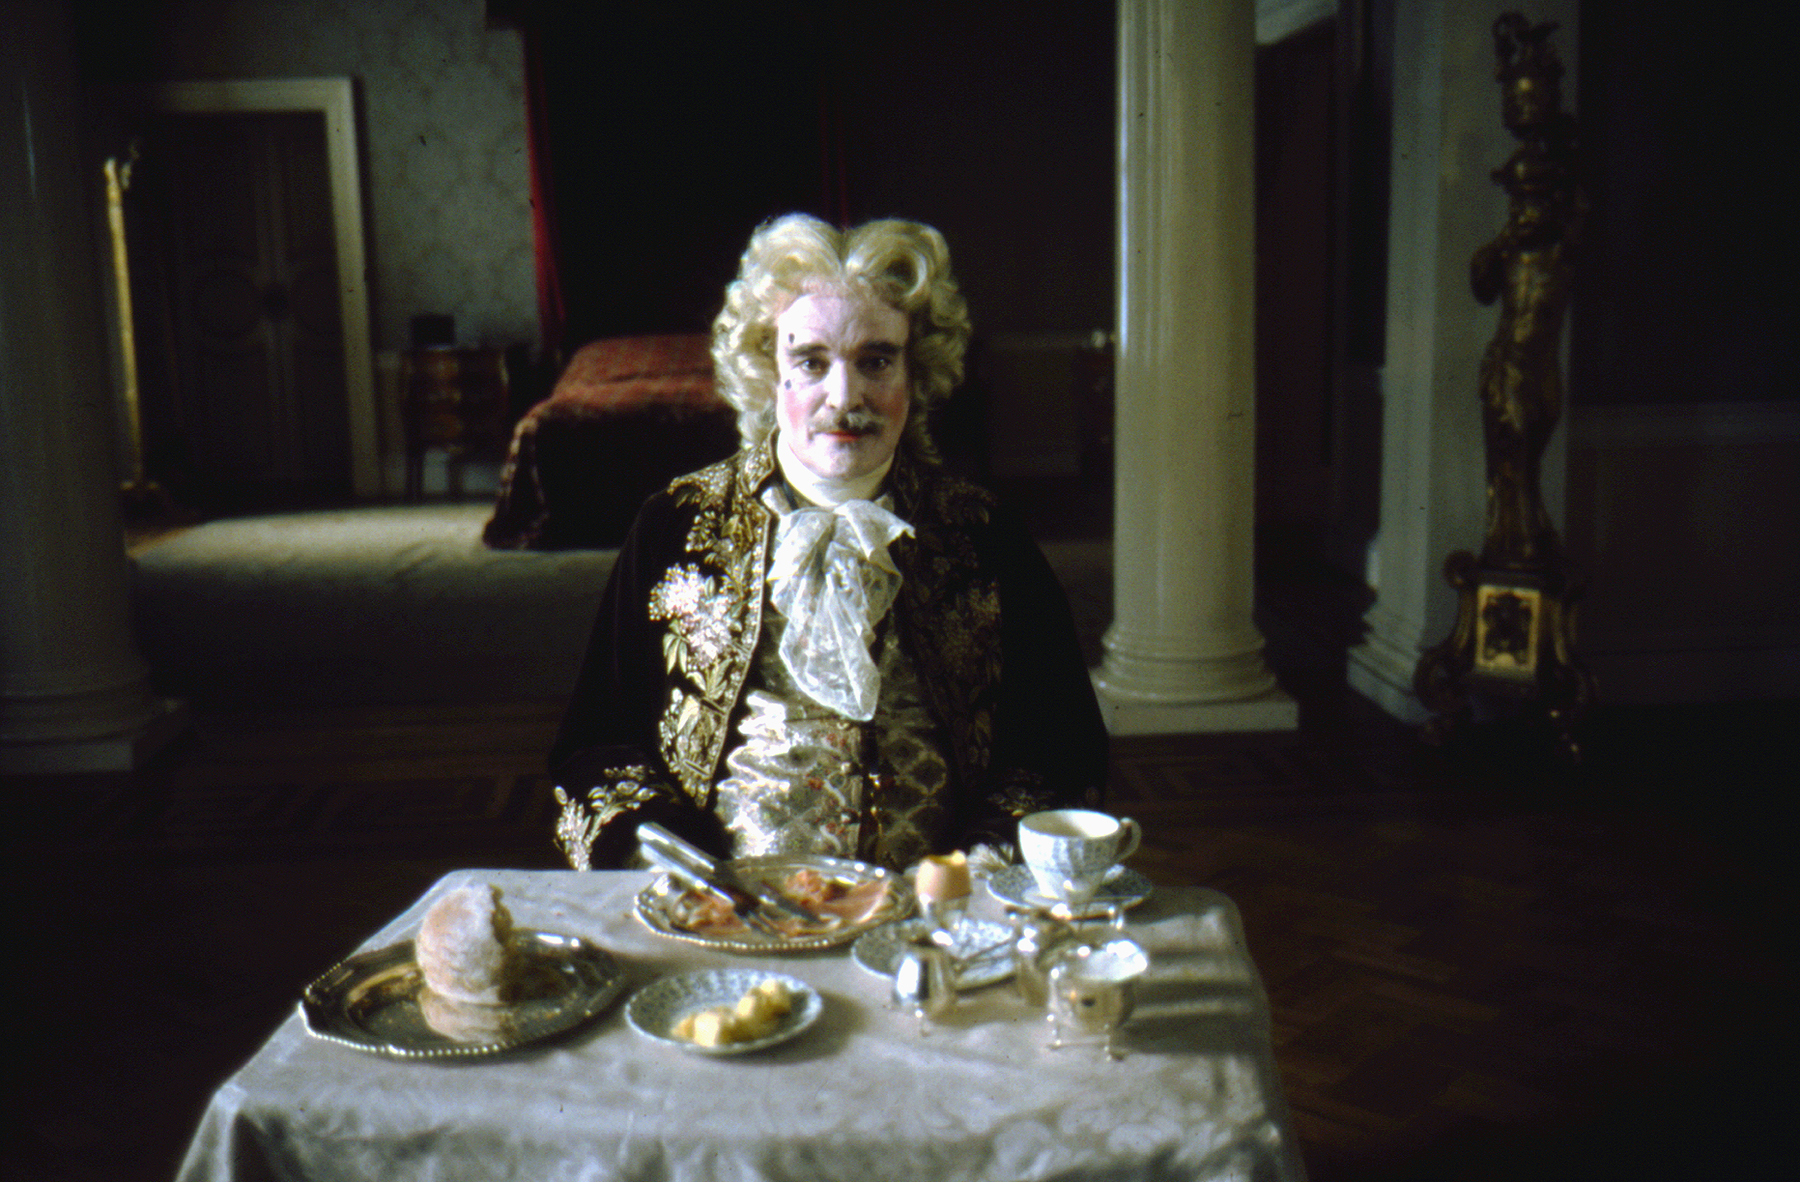 Barry Lyndon, directed by Stanley Kubrick (1973-75; GB/United States). The Chevalier de Balibari (James Magee). © Warner Bros. Entertainment Inc.